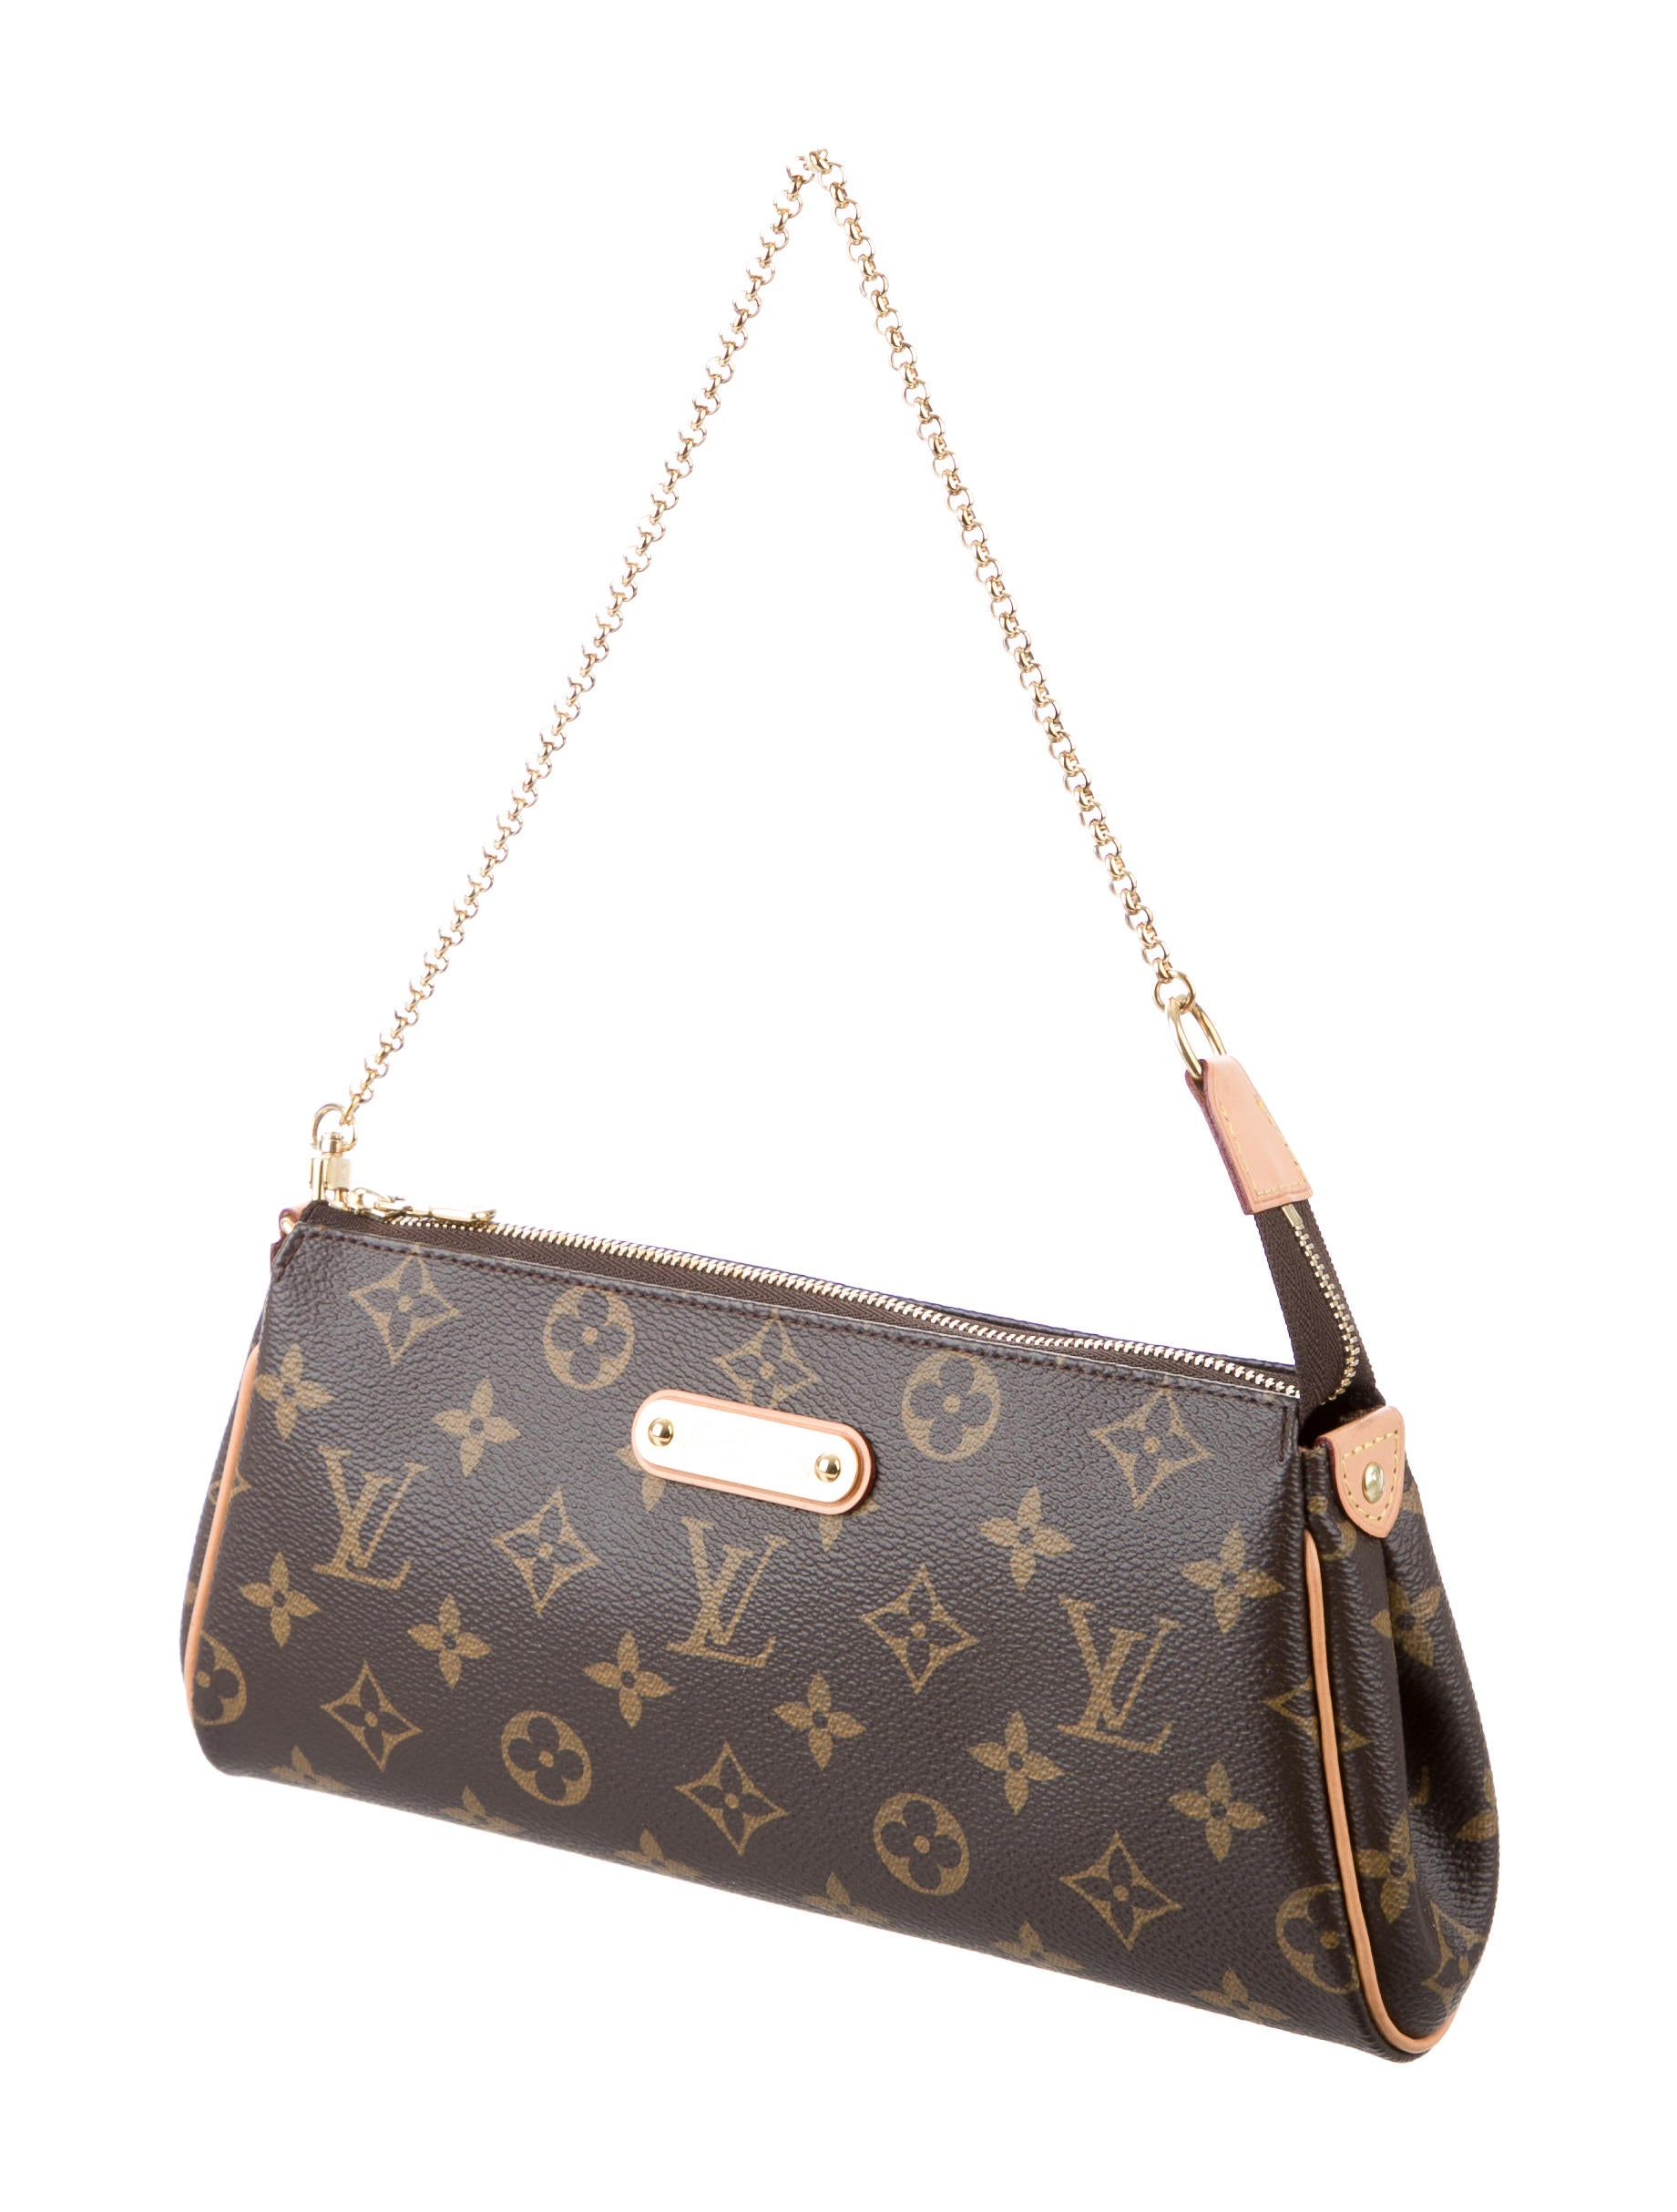 9b9f9a3c9f2c Louis Vuitton Modelo Eva. Louis Vuitton - Eva Clutch Damier Canvas Ebene